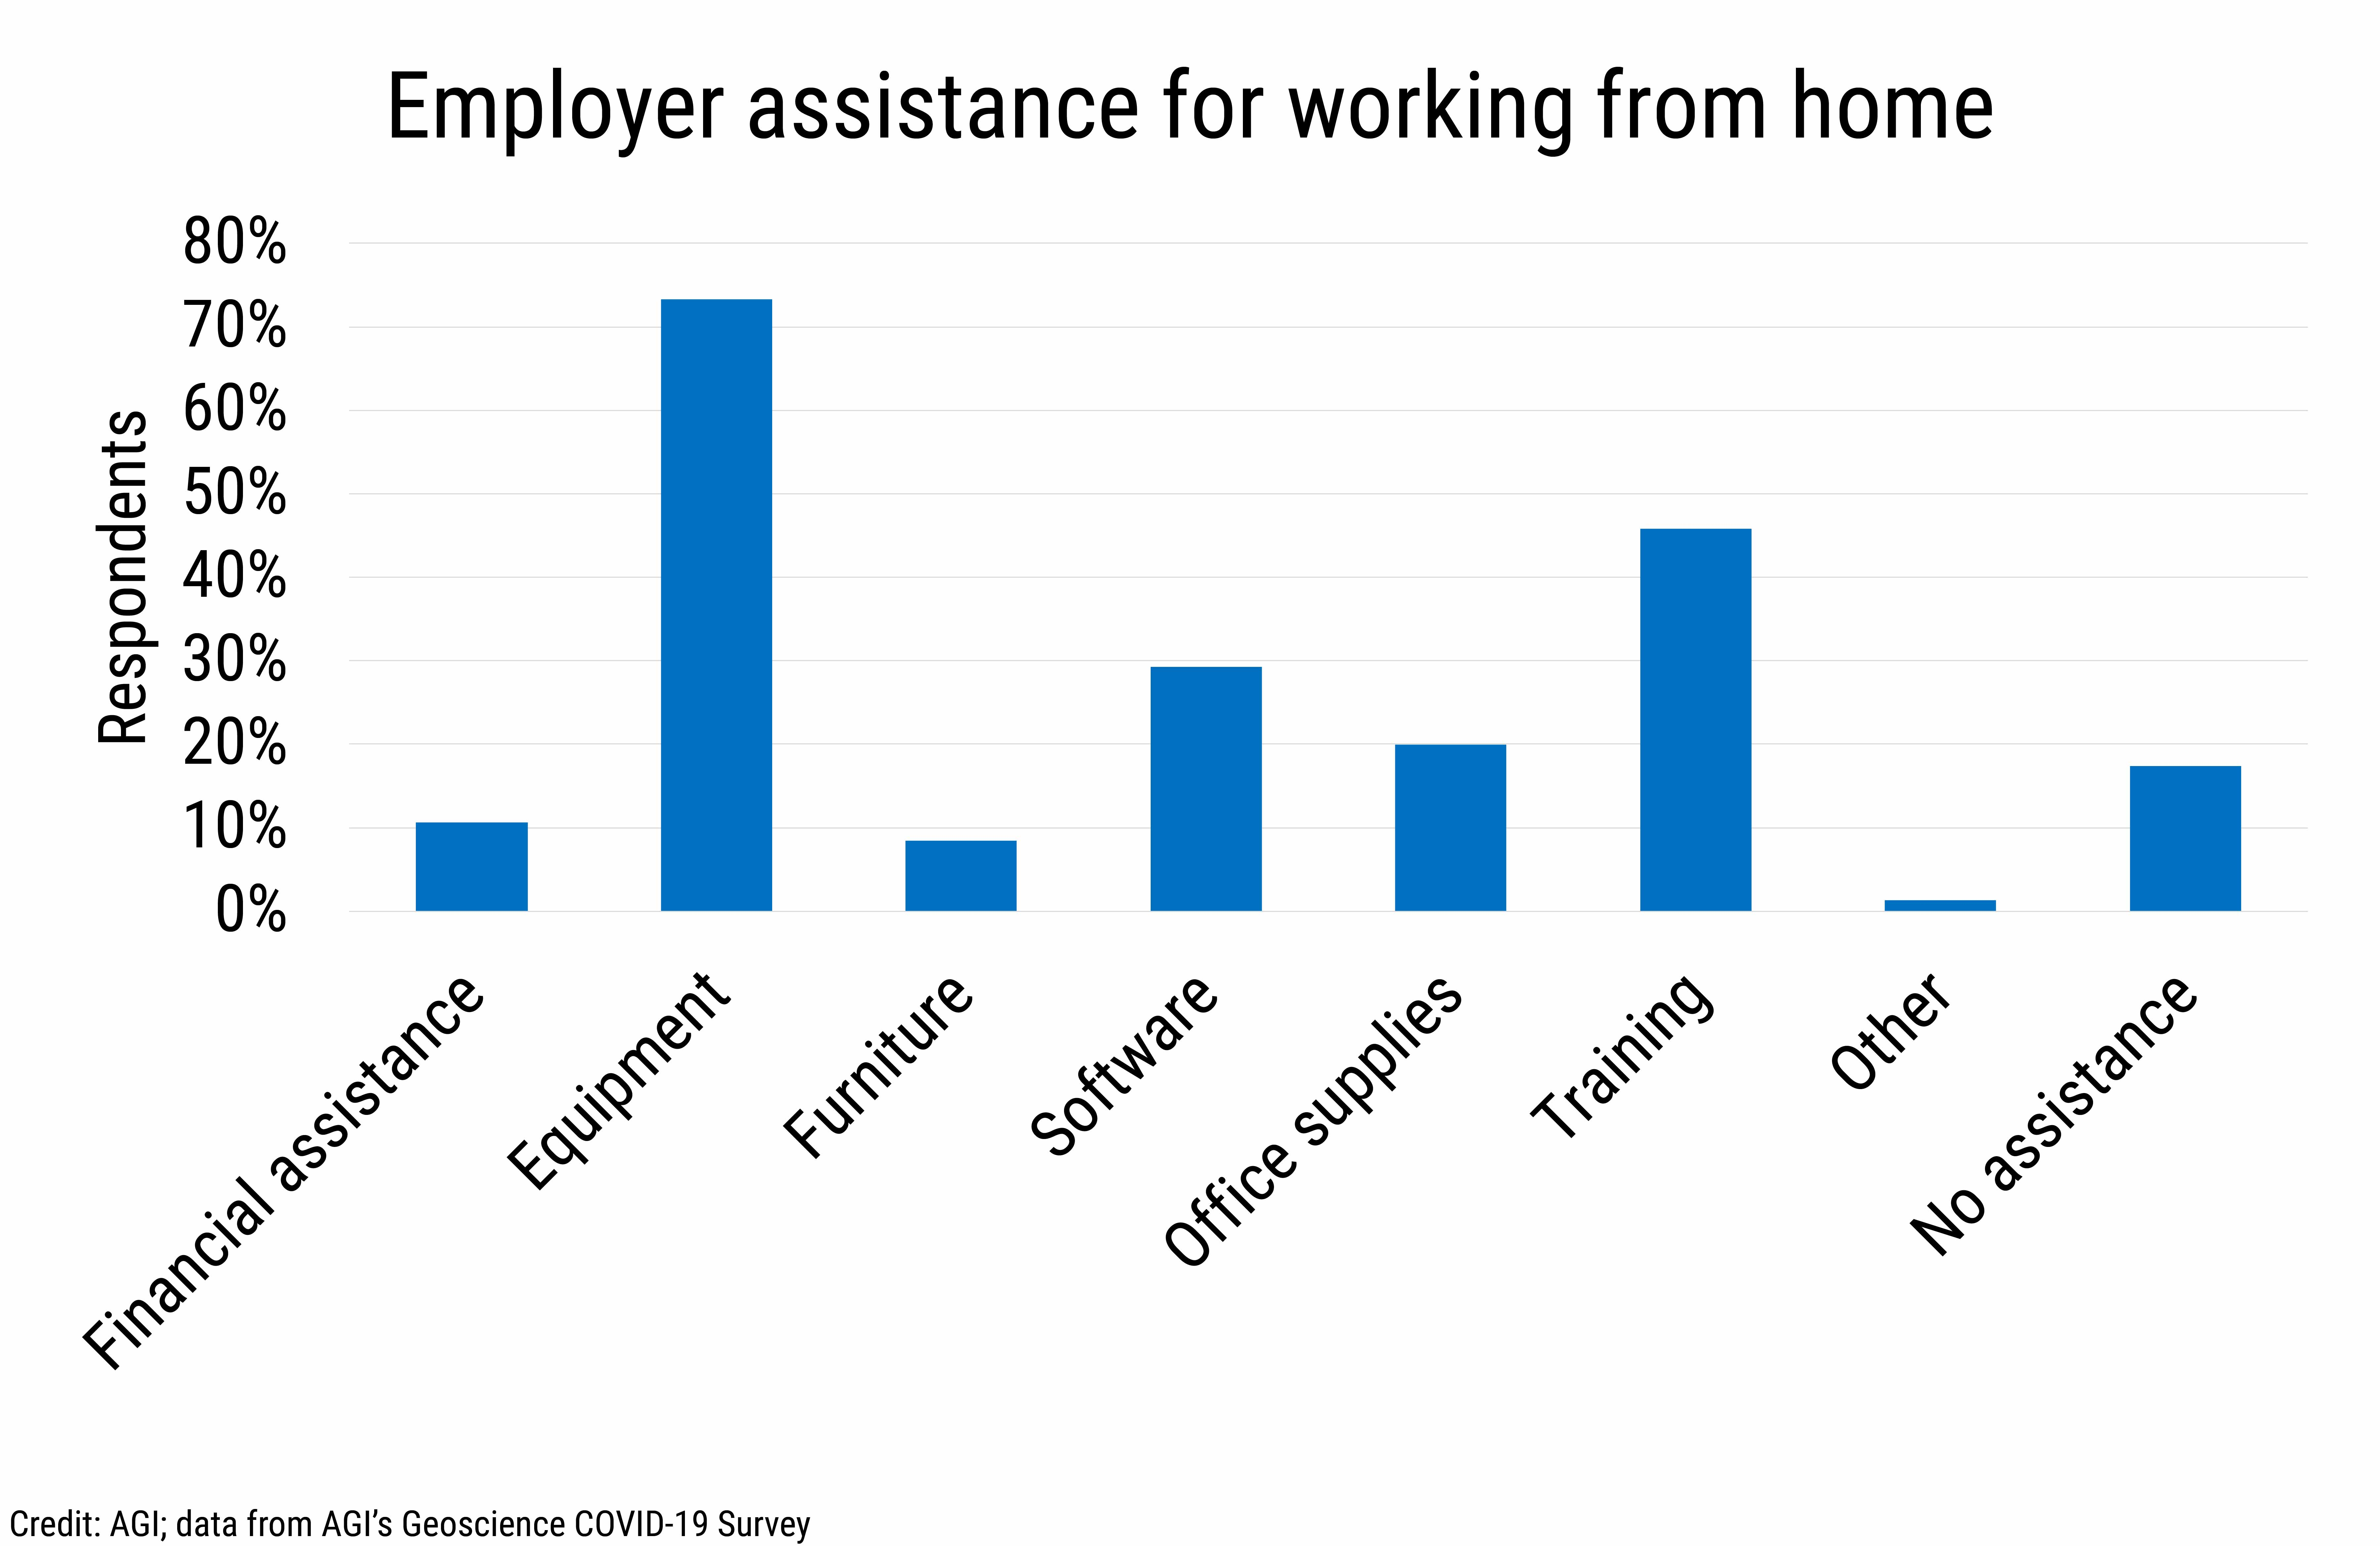 DB_2021-007 chart 02: Employer assistance for working from home (Credit: AGI; data from AGI's Geoscience COVID-19 Survey)